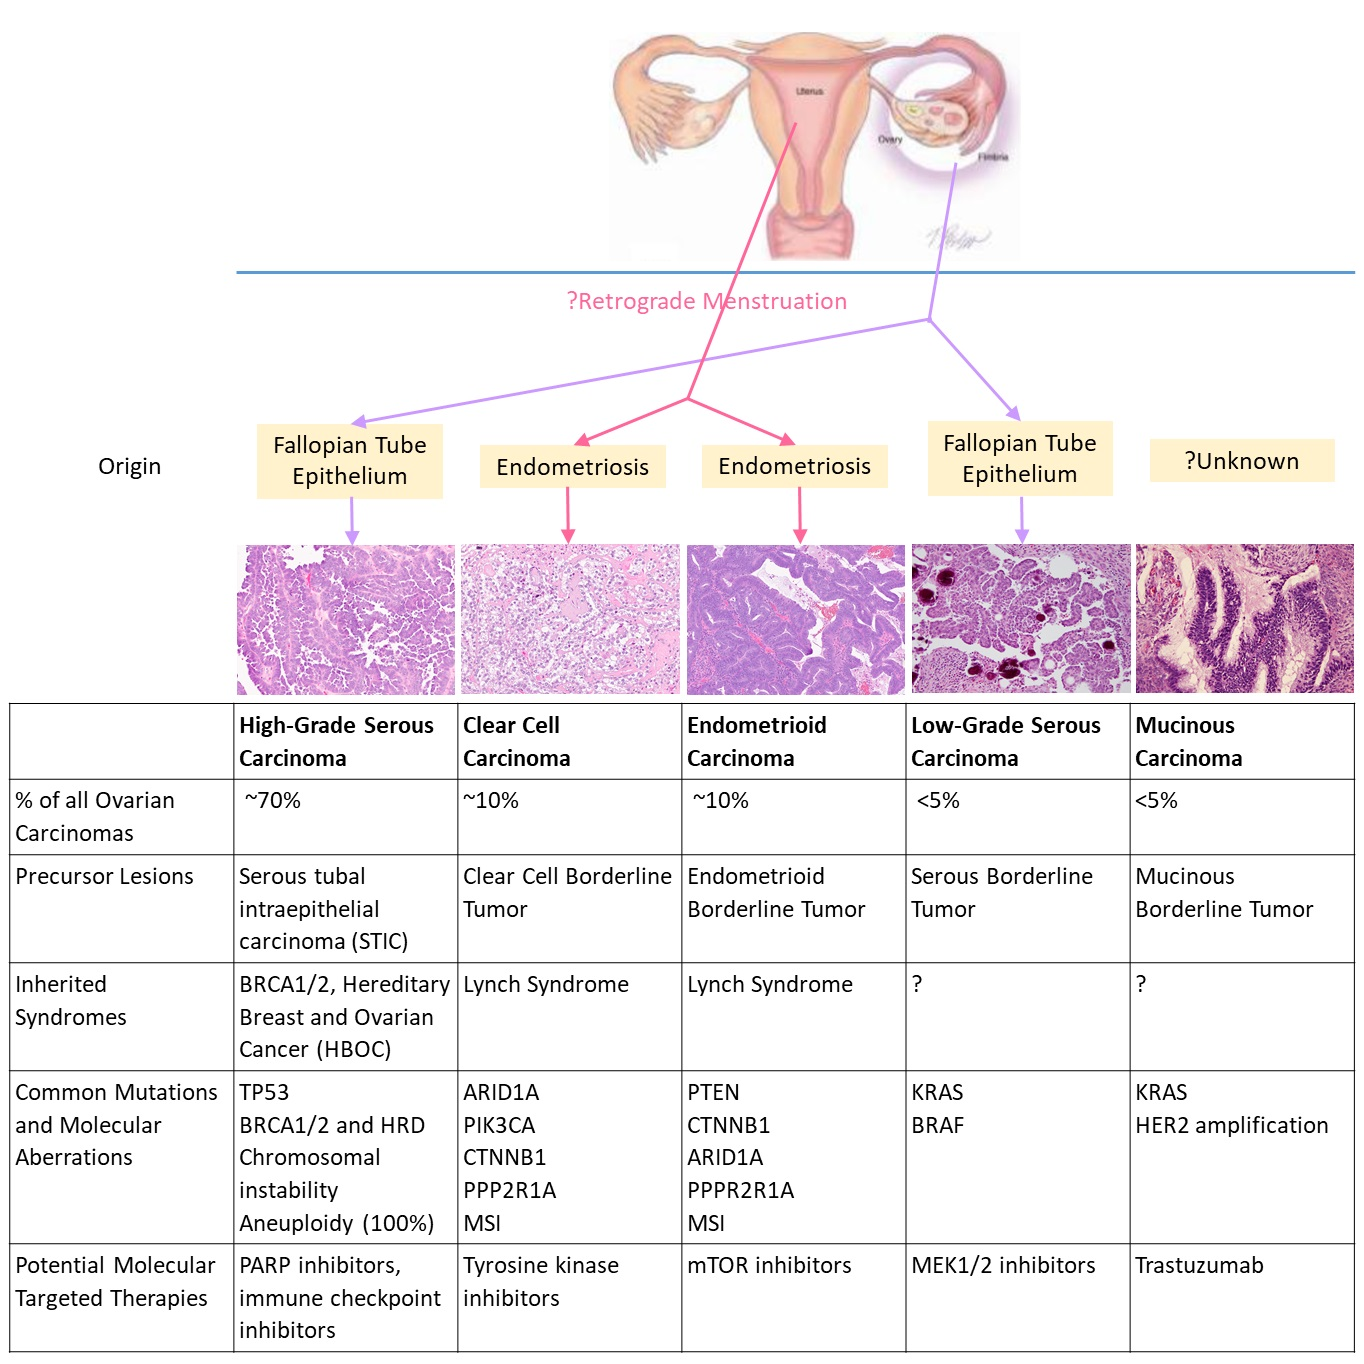 2 histological classification of ovarian carcinoma